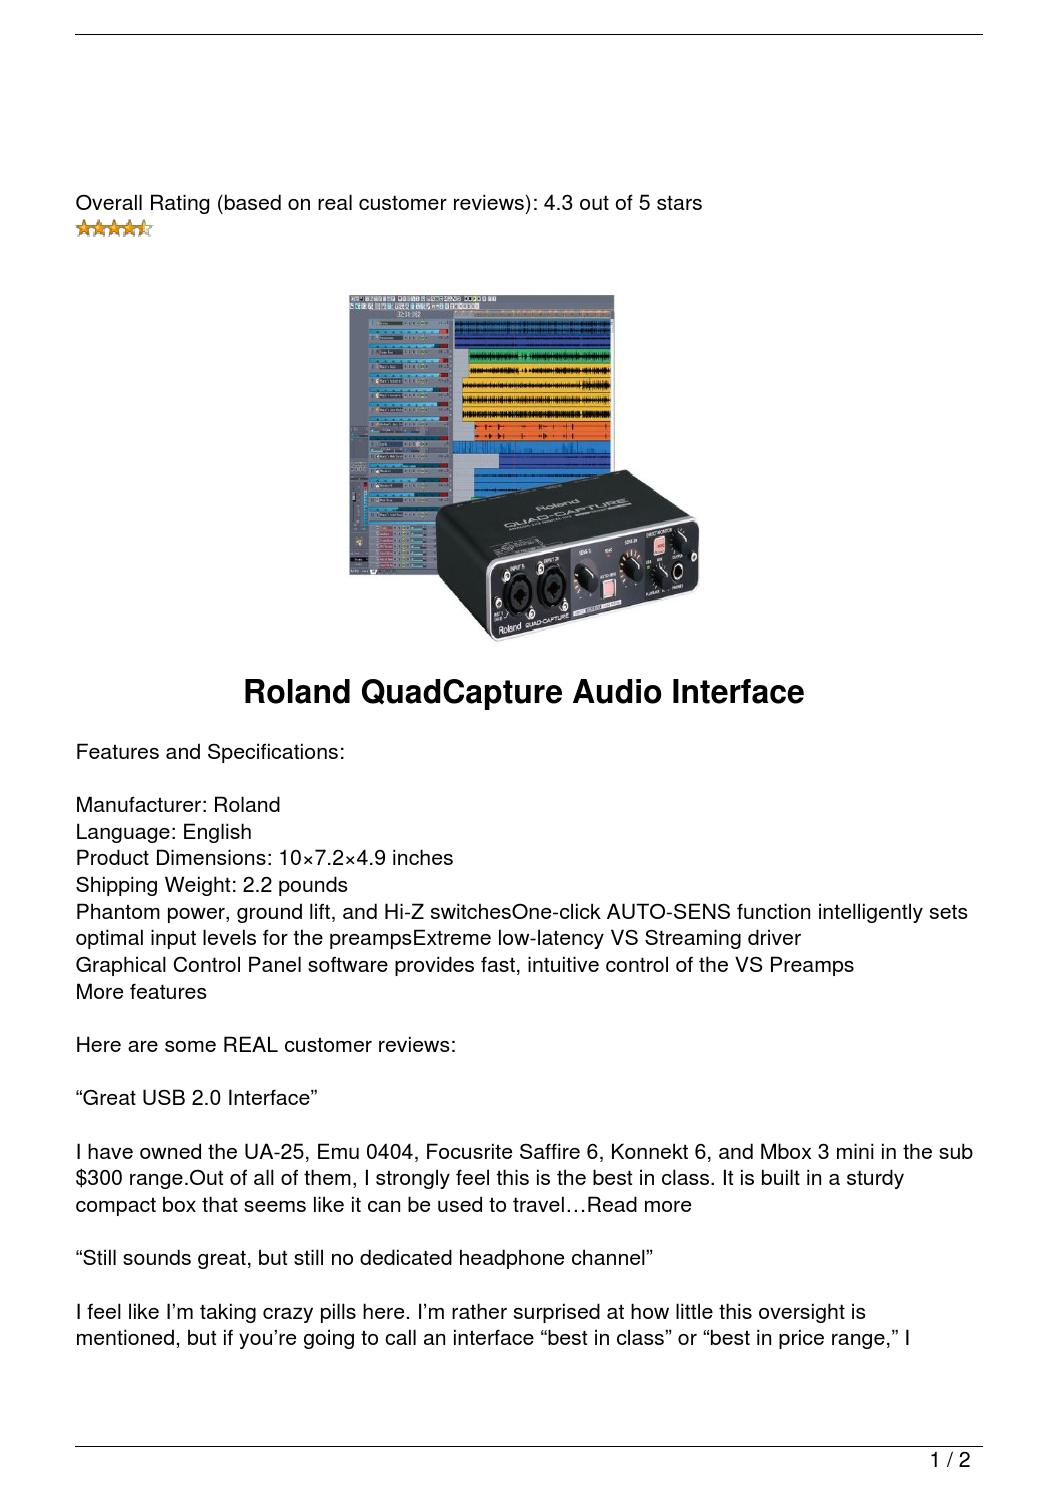 sale roland quadcapture audio interface by kelly atkins issuu. Black Bedroom Furniture Sets. Home Design Ideas